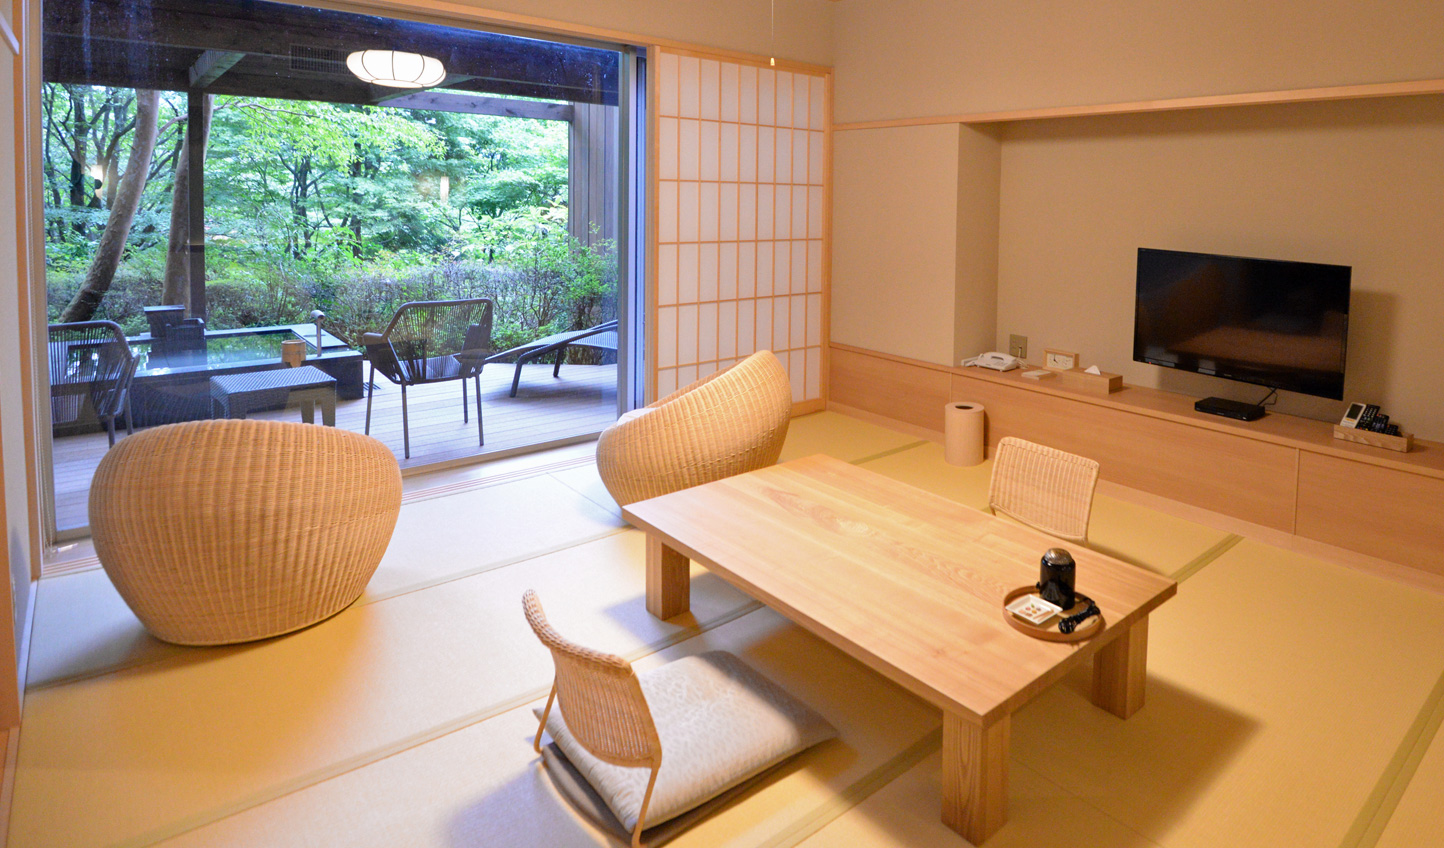 Lined with Tatami mats and showcasing minimalist design, the suites embody traditional Japanese style